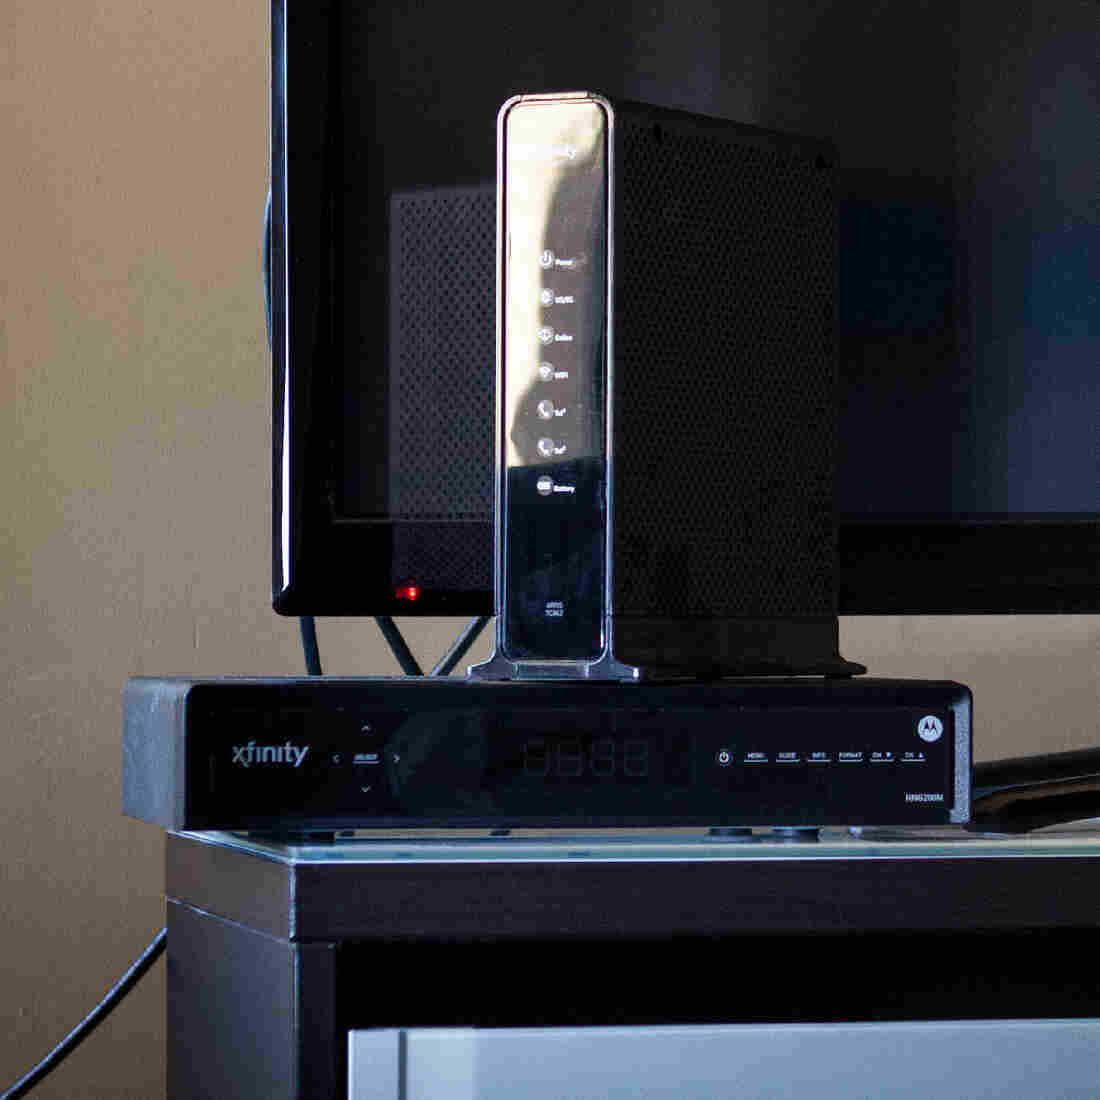 A study by two U.S. senators estimated that 99 percent of cable TV subscribers rent their set-top boxes and pay on average $231 a year to do so.